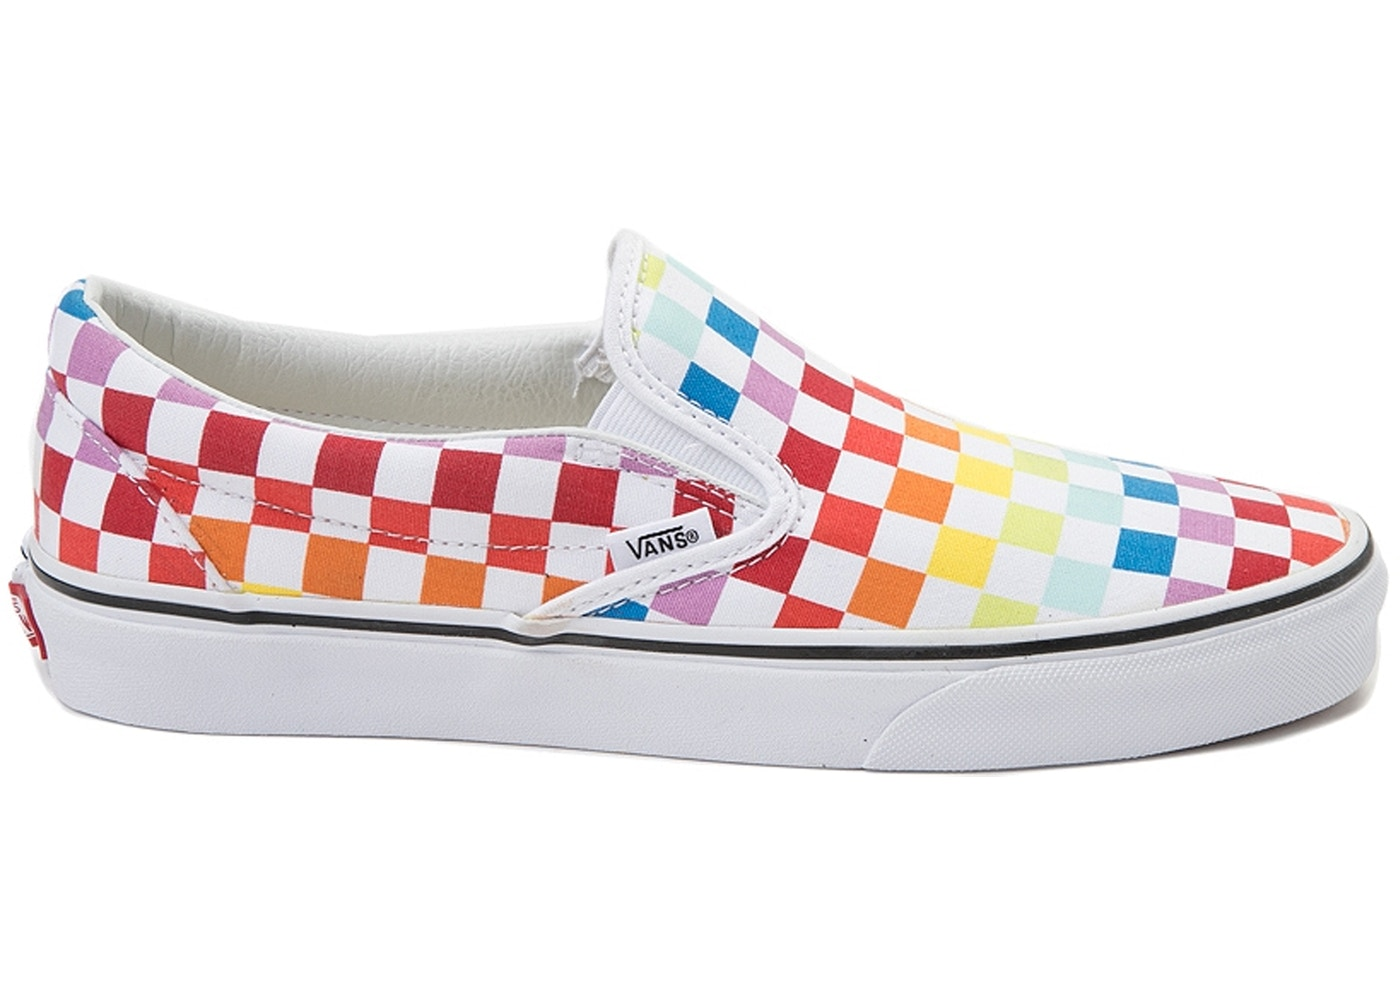 Rainbow Slip Checkerboard Putkizoxwl On Vans reCdBox